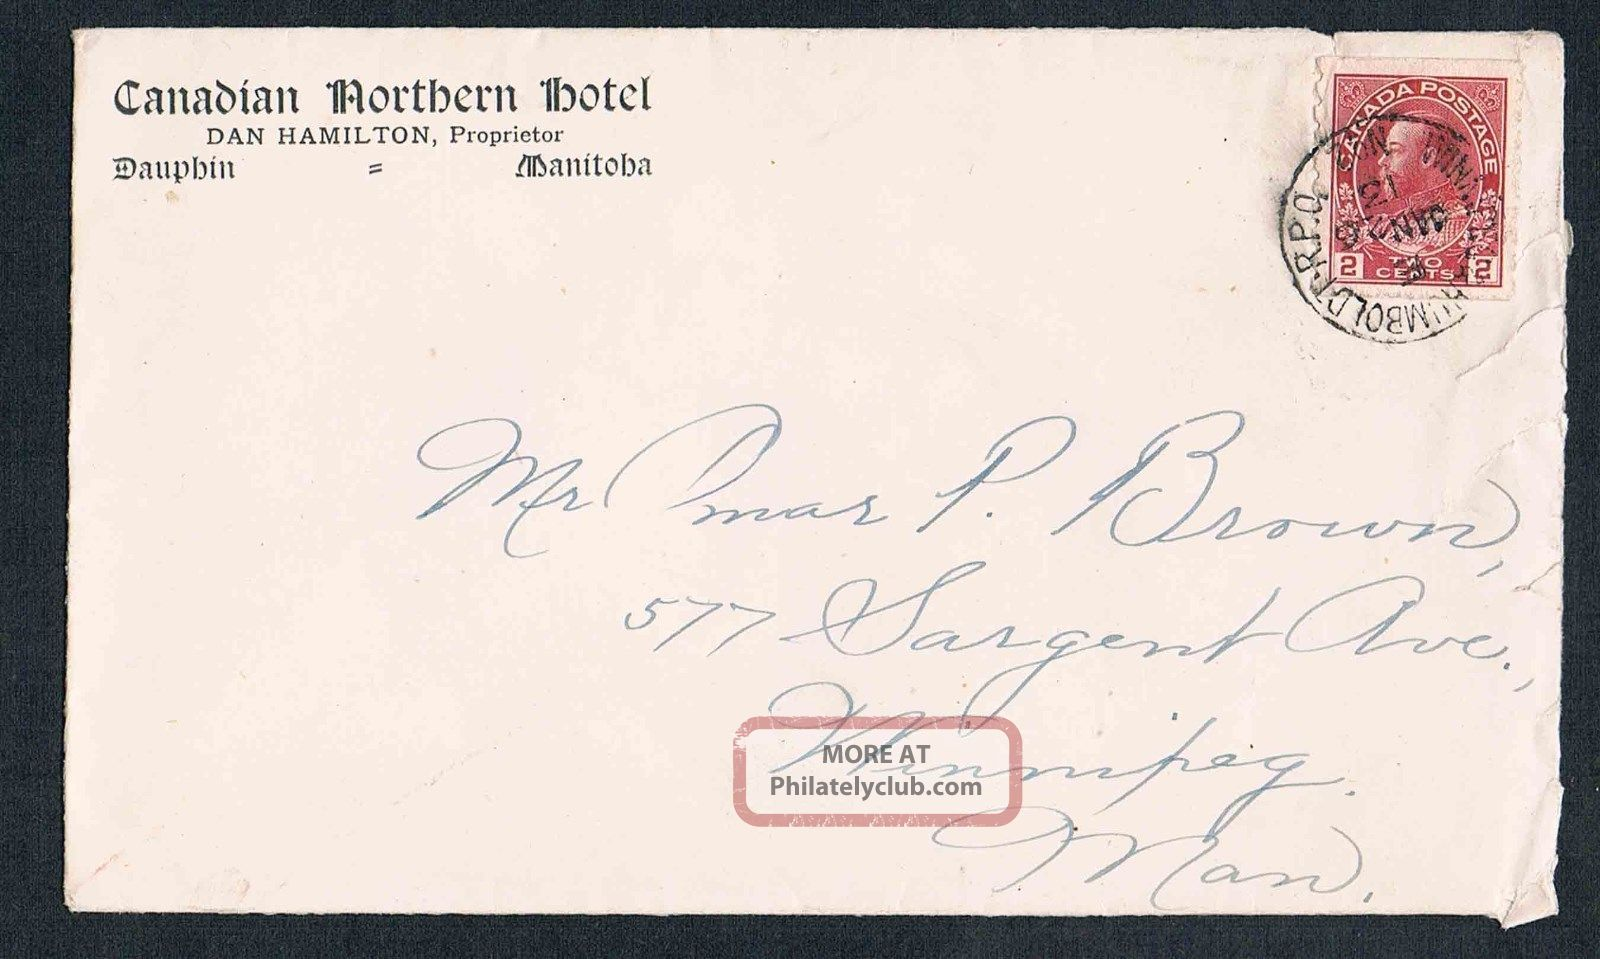 1913 Canadian Northern Hotel Of Dauphin Manitoba Dan Hamilton Prop Cover Canada photo